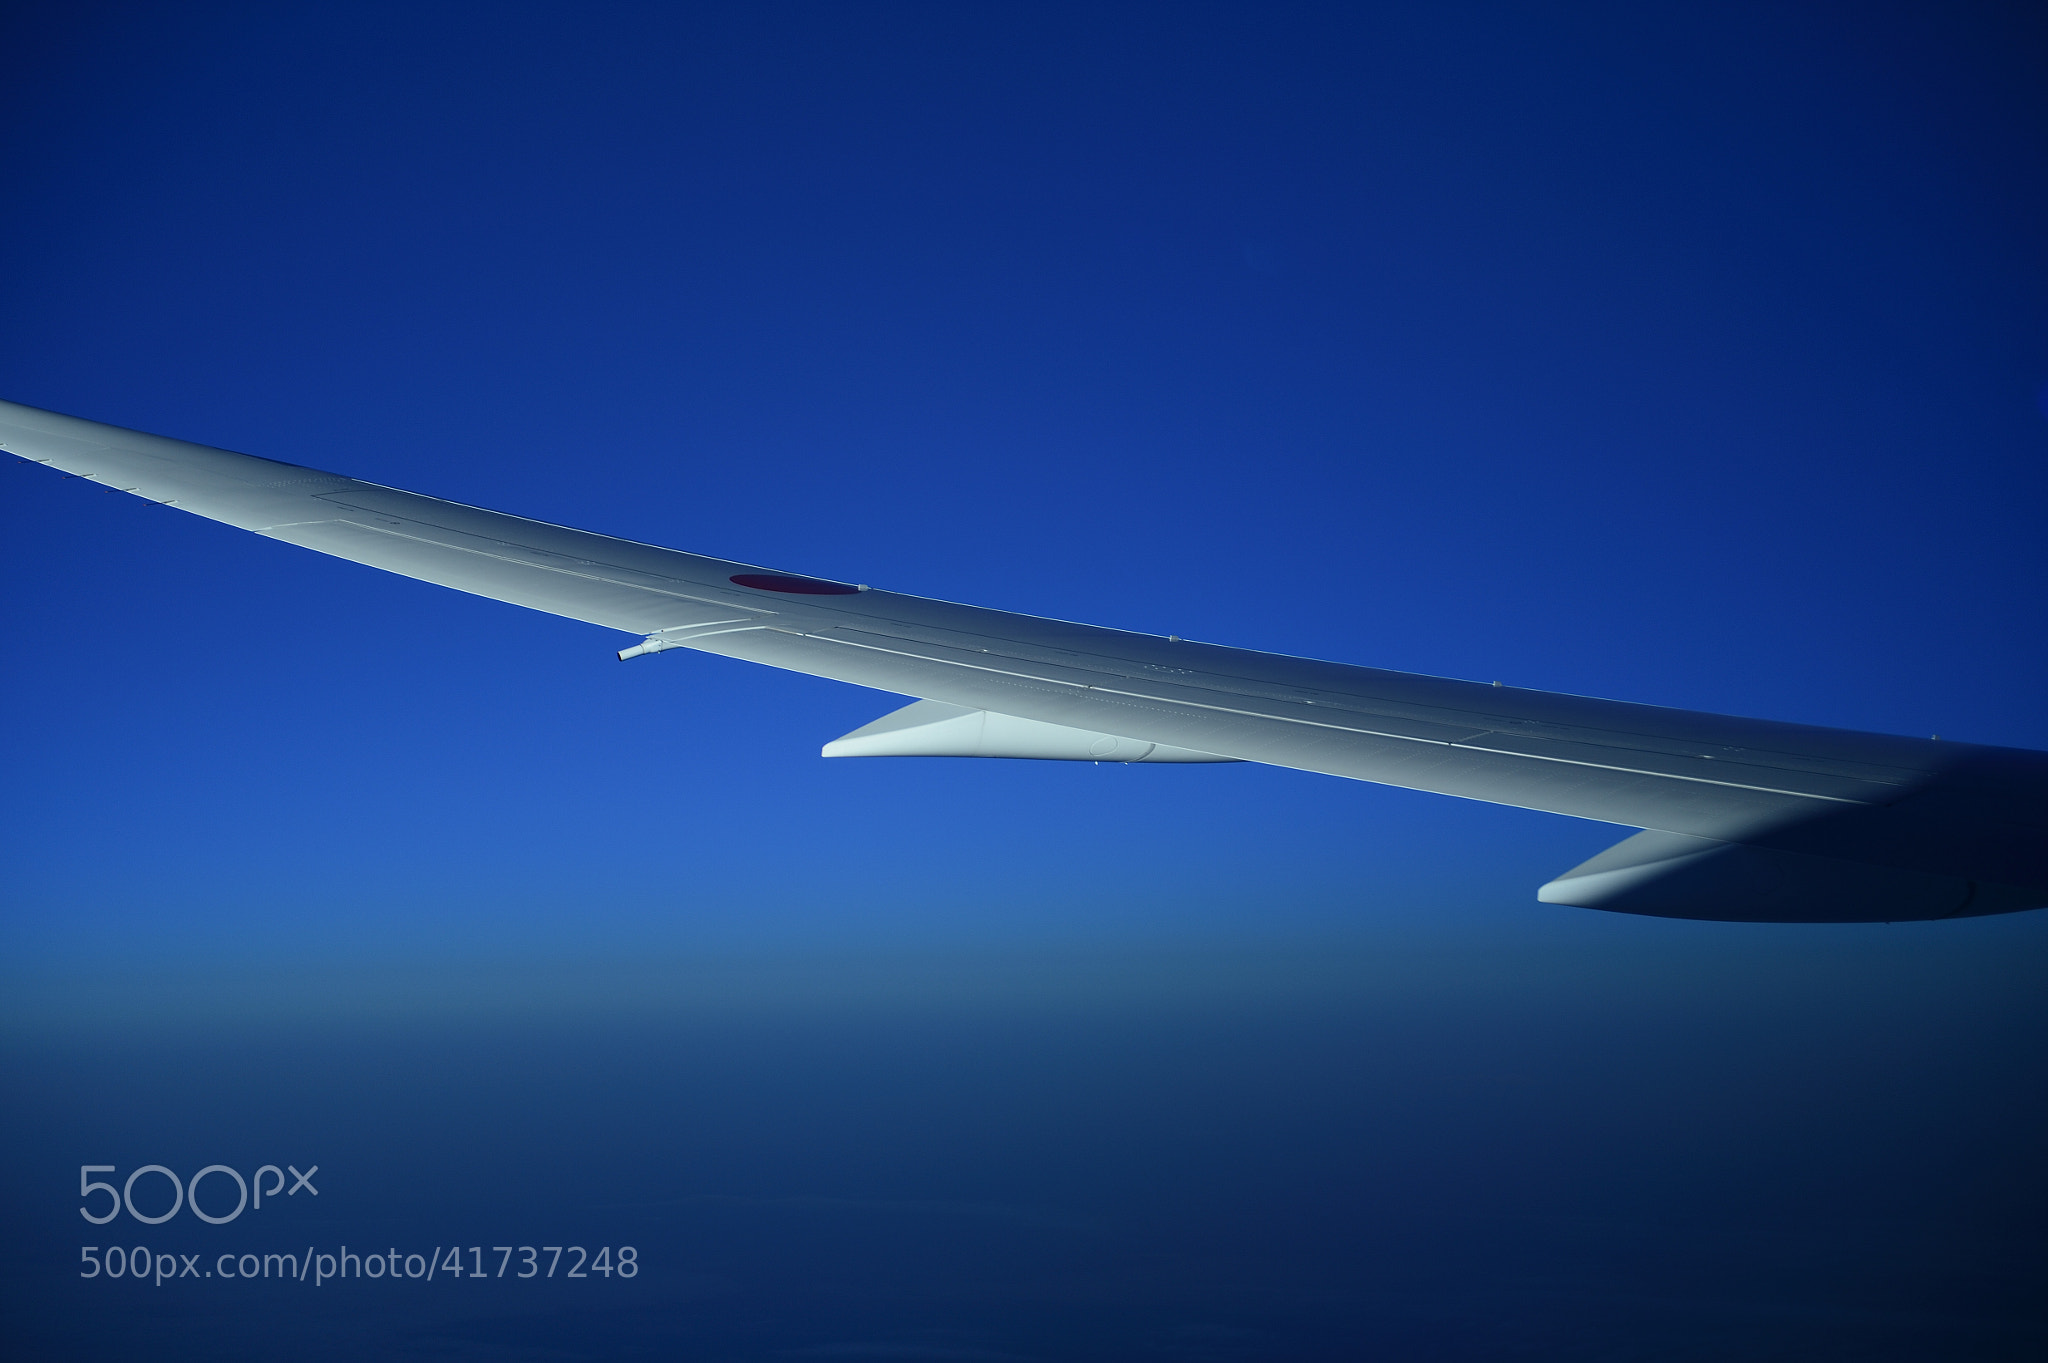 Photograph Sword in the blue. by Keith_TT on 500px